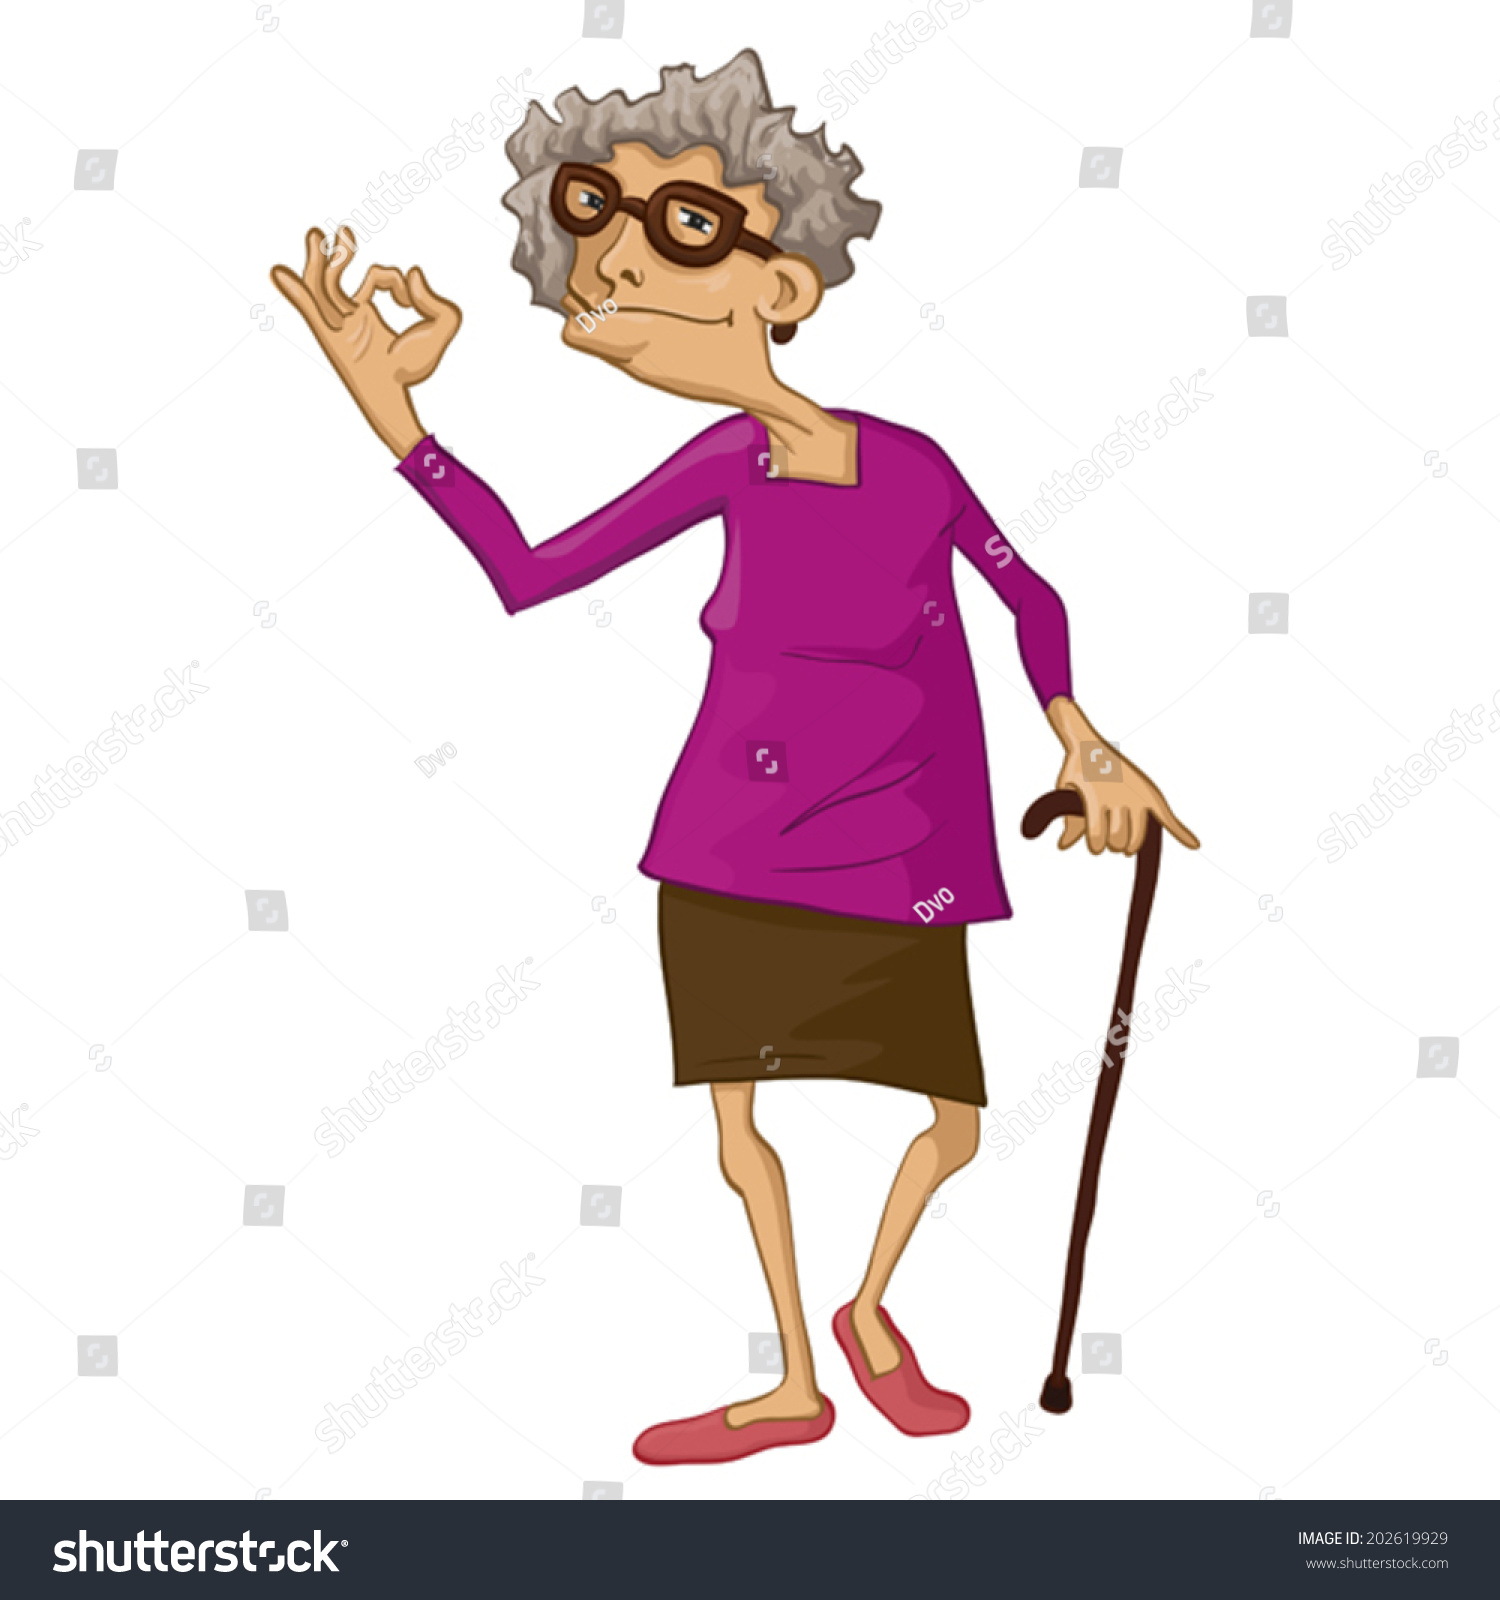 This illustration depicts an old woman